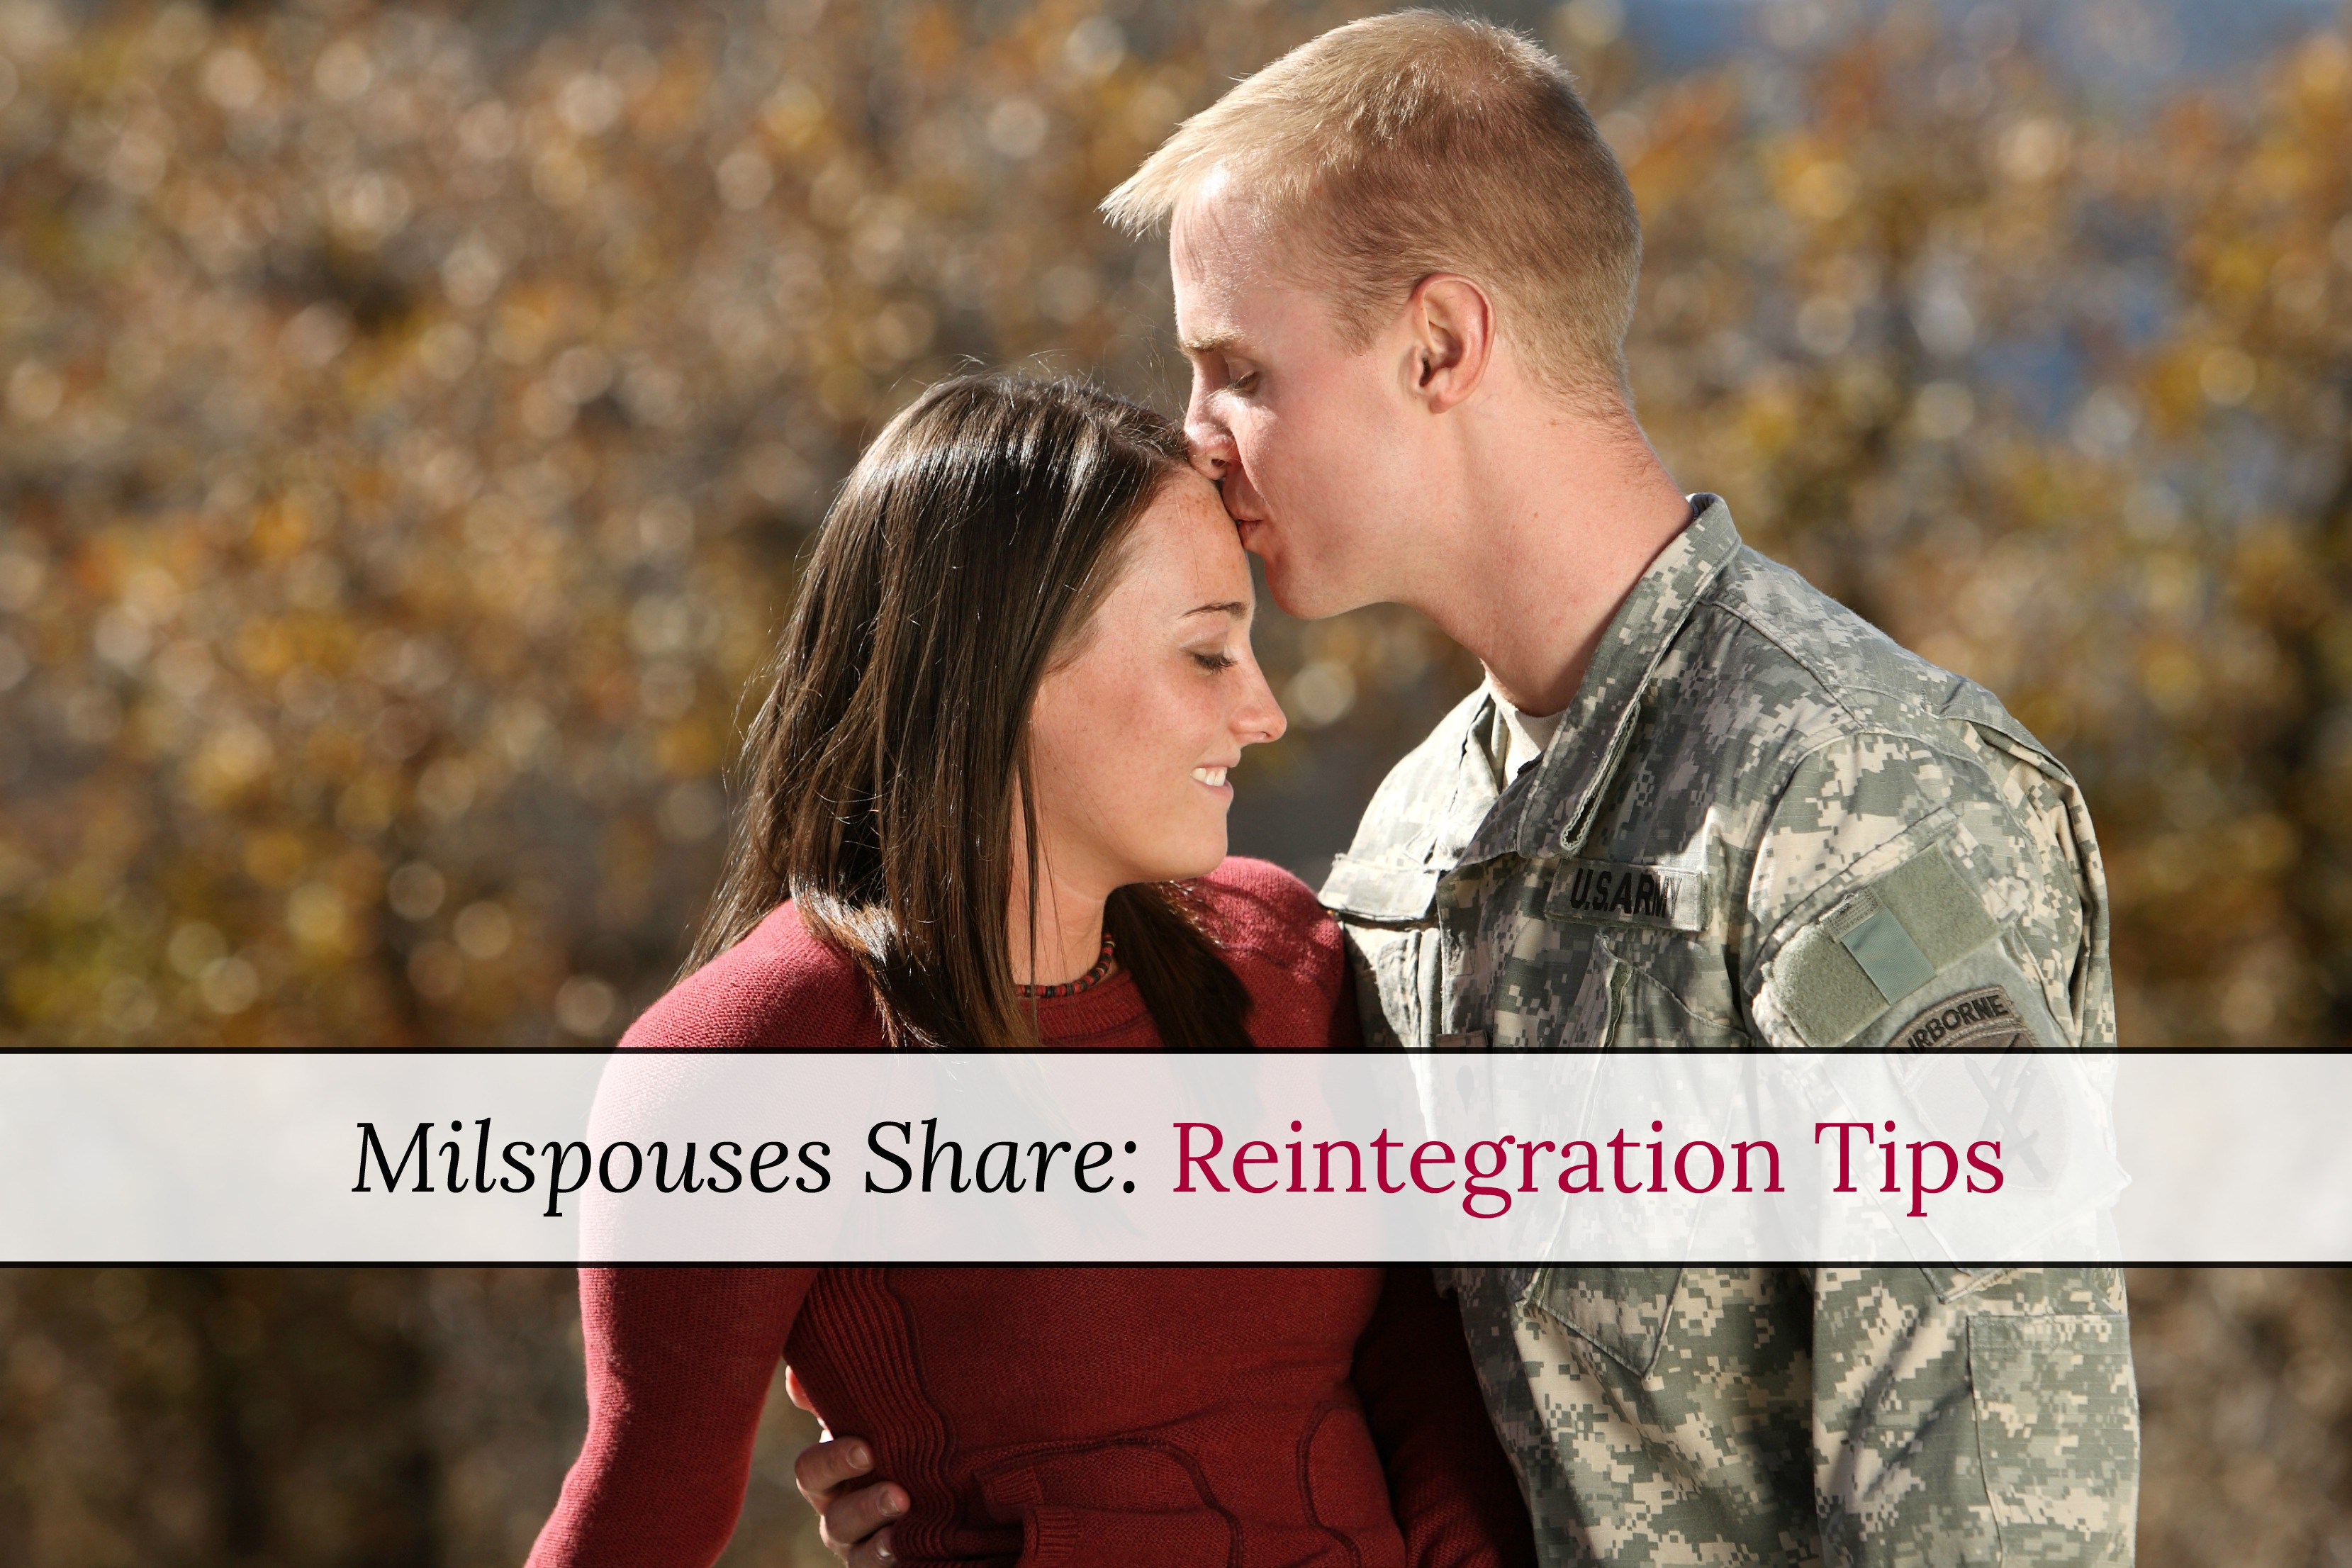 Milspouses Share: Reintegration Tips